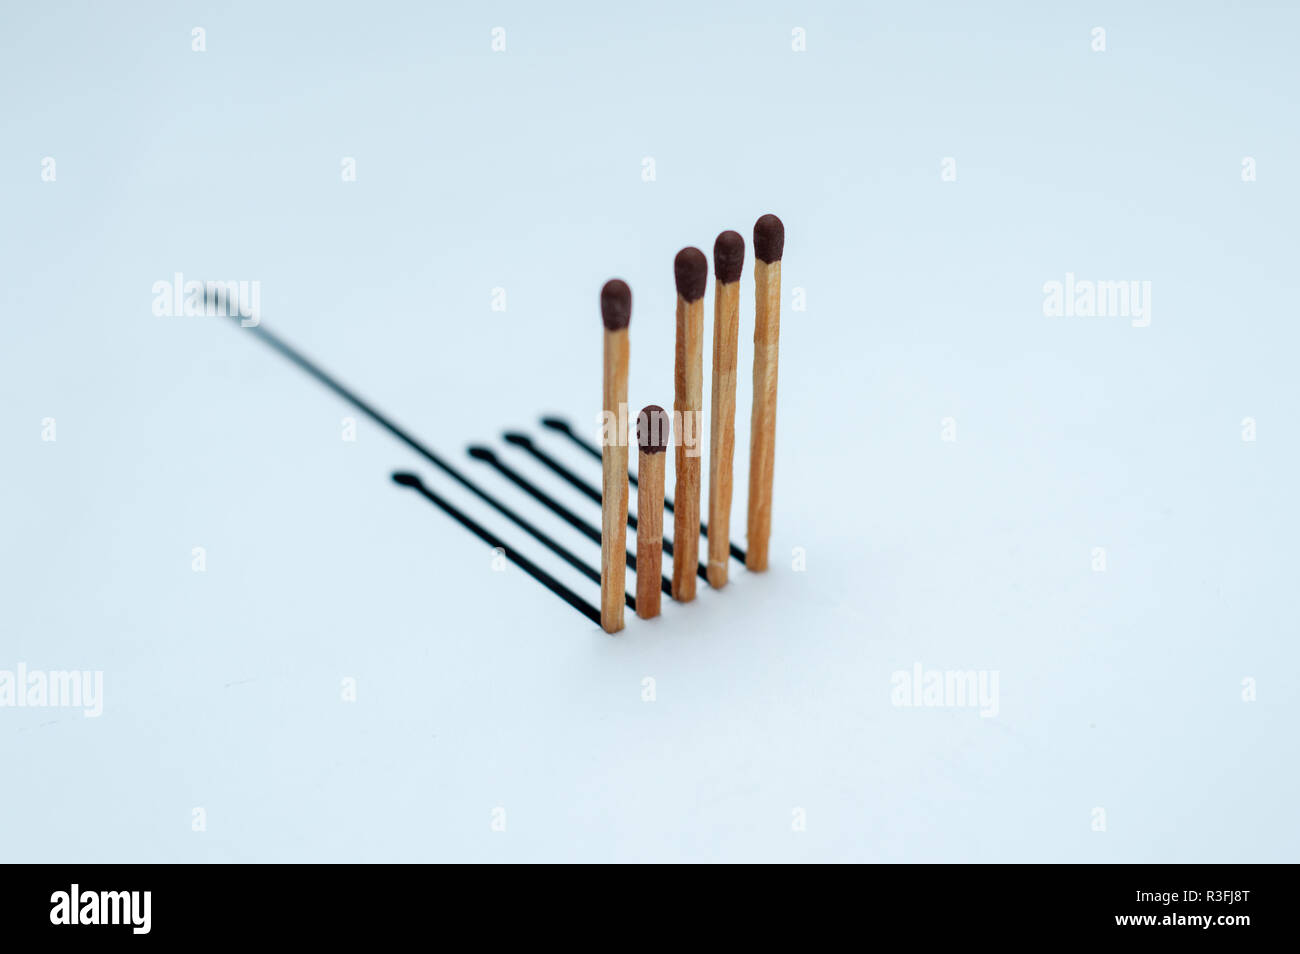 Wooden matches with the wrong shadow on white paper - Stock Image